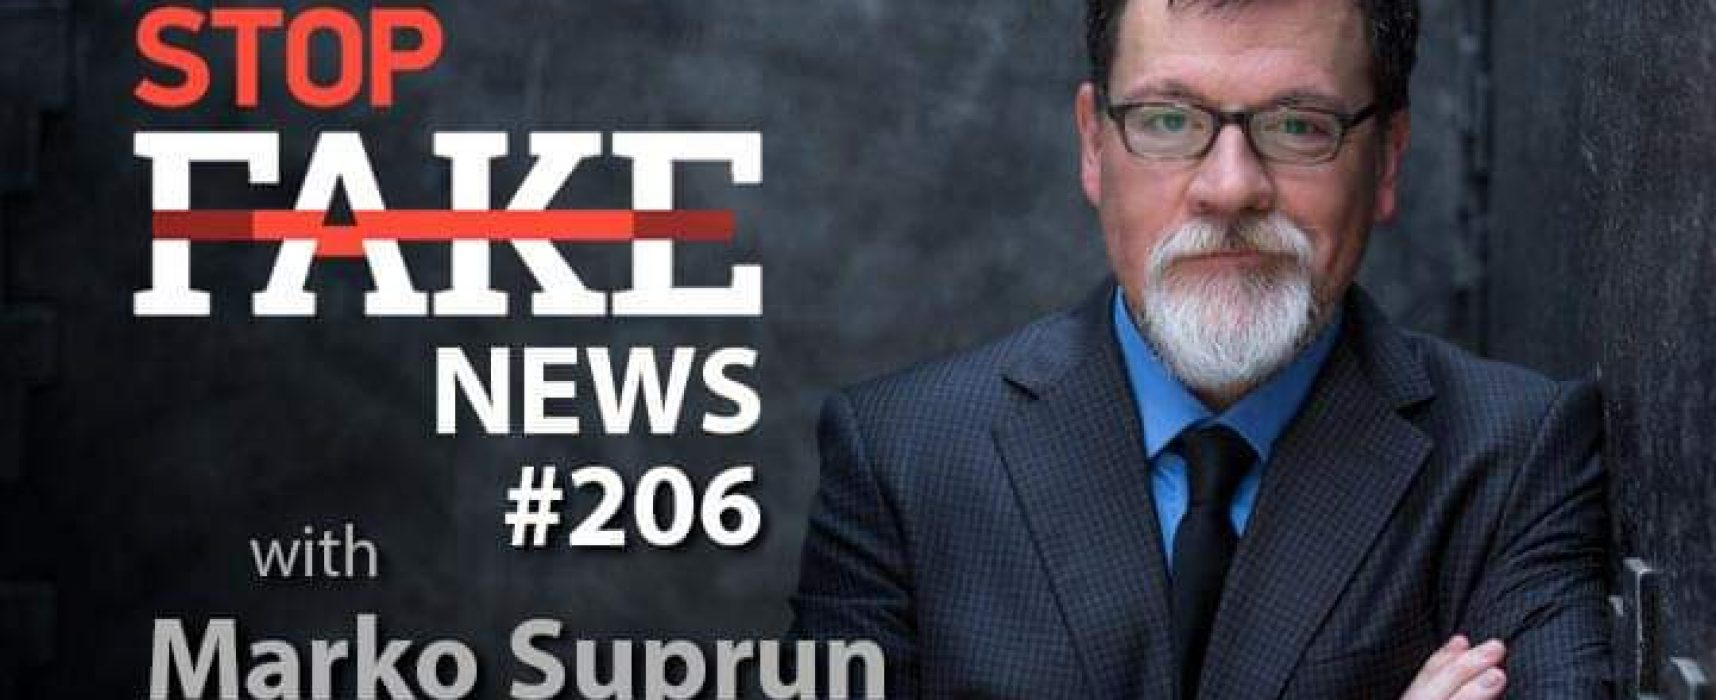 StopFake News #206 with Marko Suprun